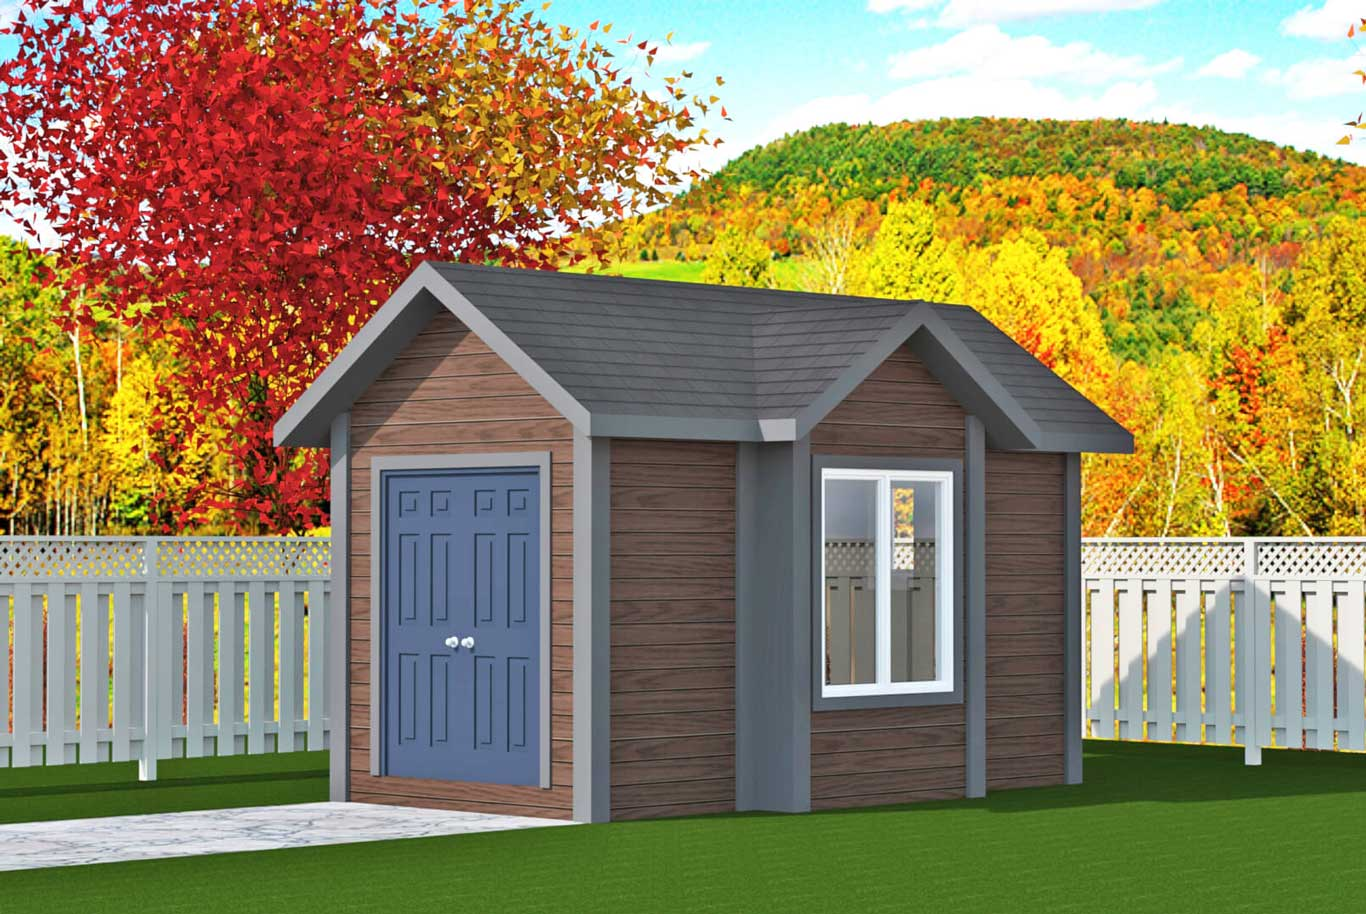 64 sq.ft. timber mart shed french doors